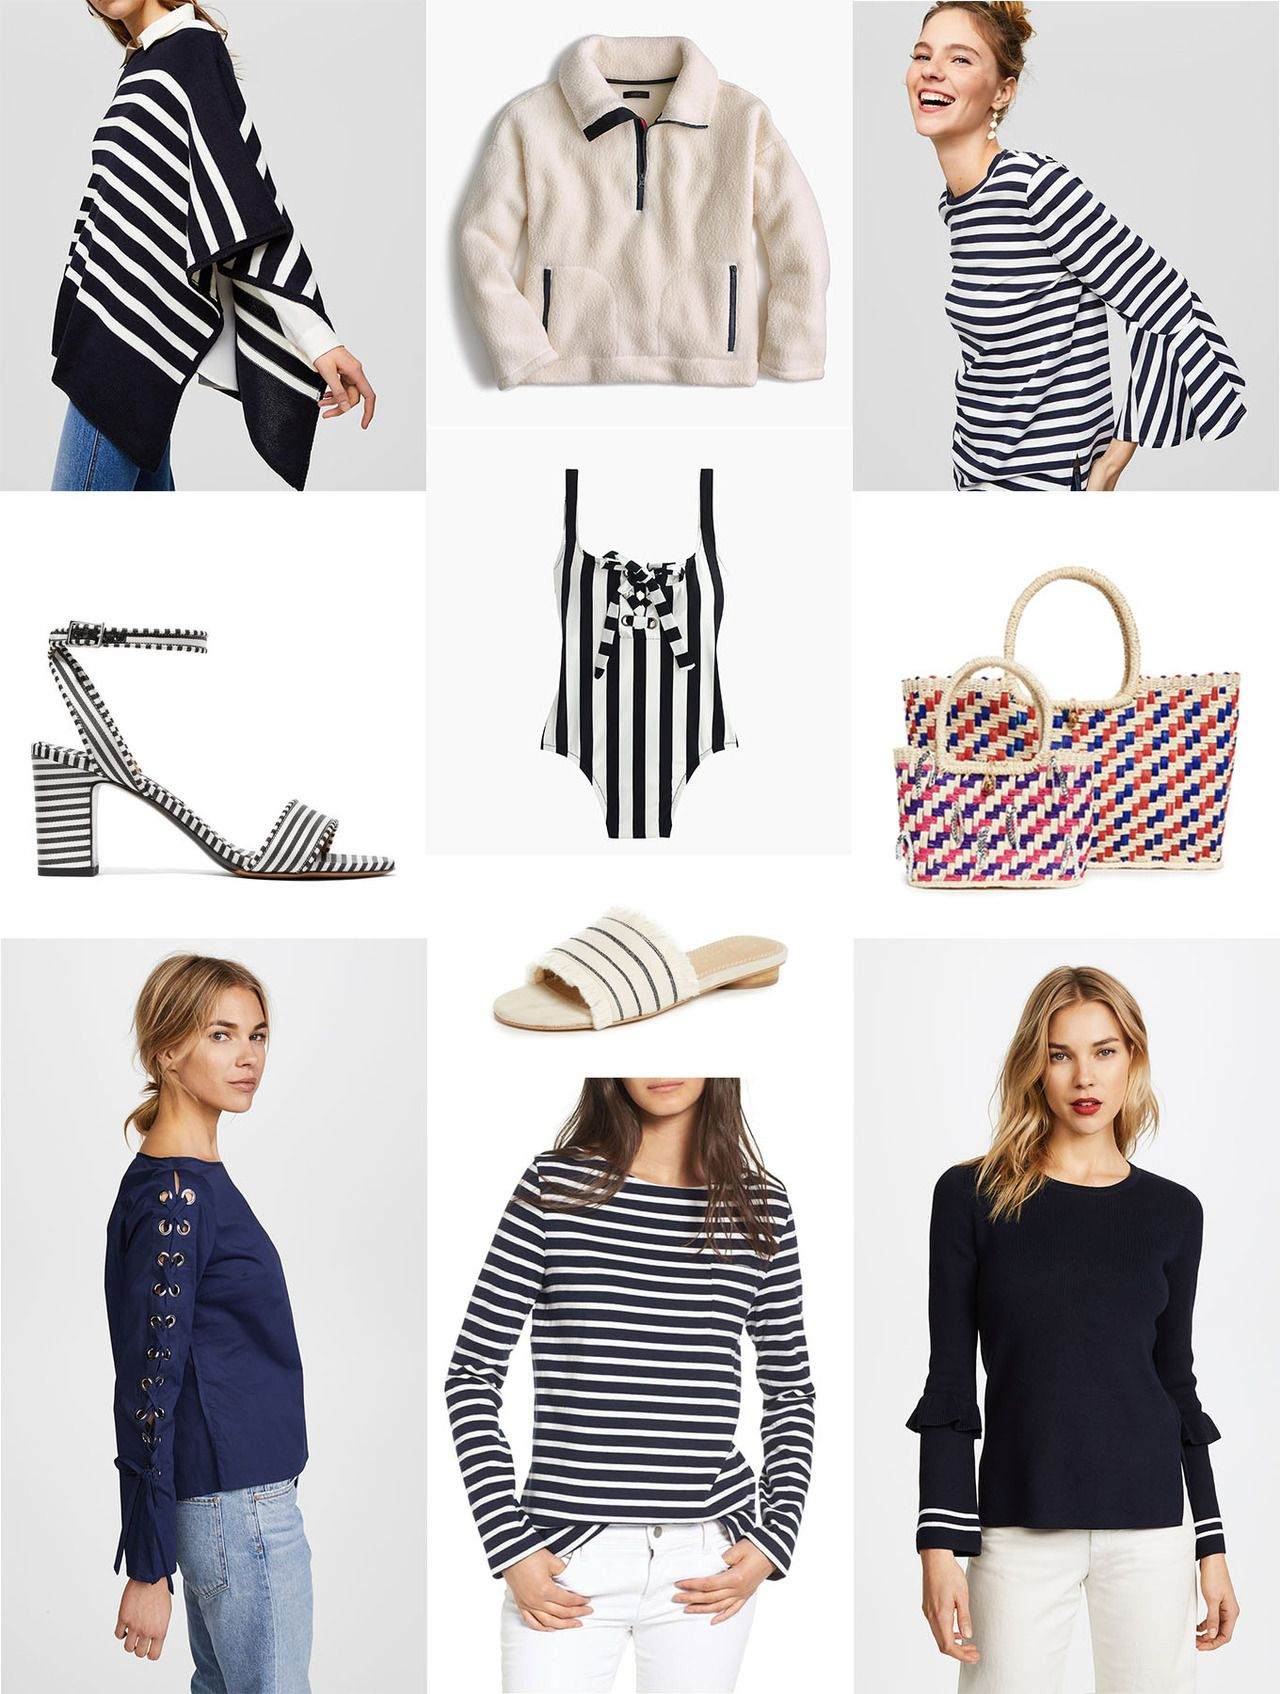 New Arrivals that Caught My Eye http://ridgelysradar.com/2018/01/new-arrivals-that-caught-my-eye.html